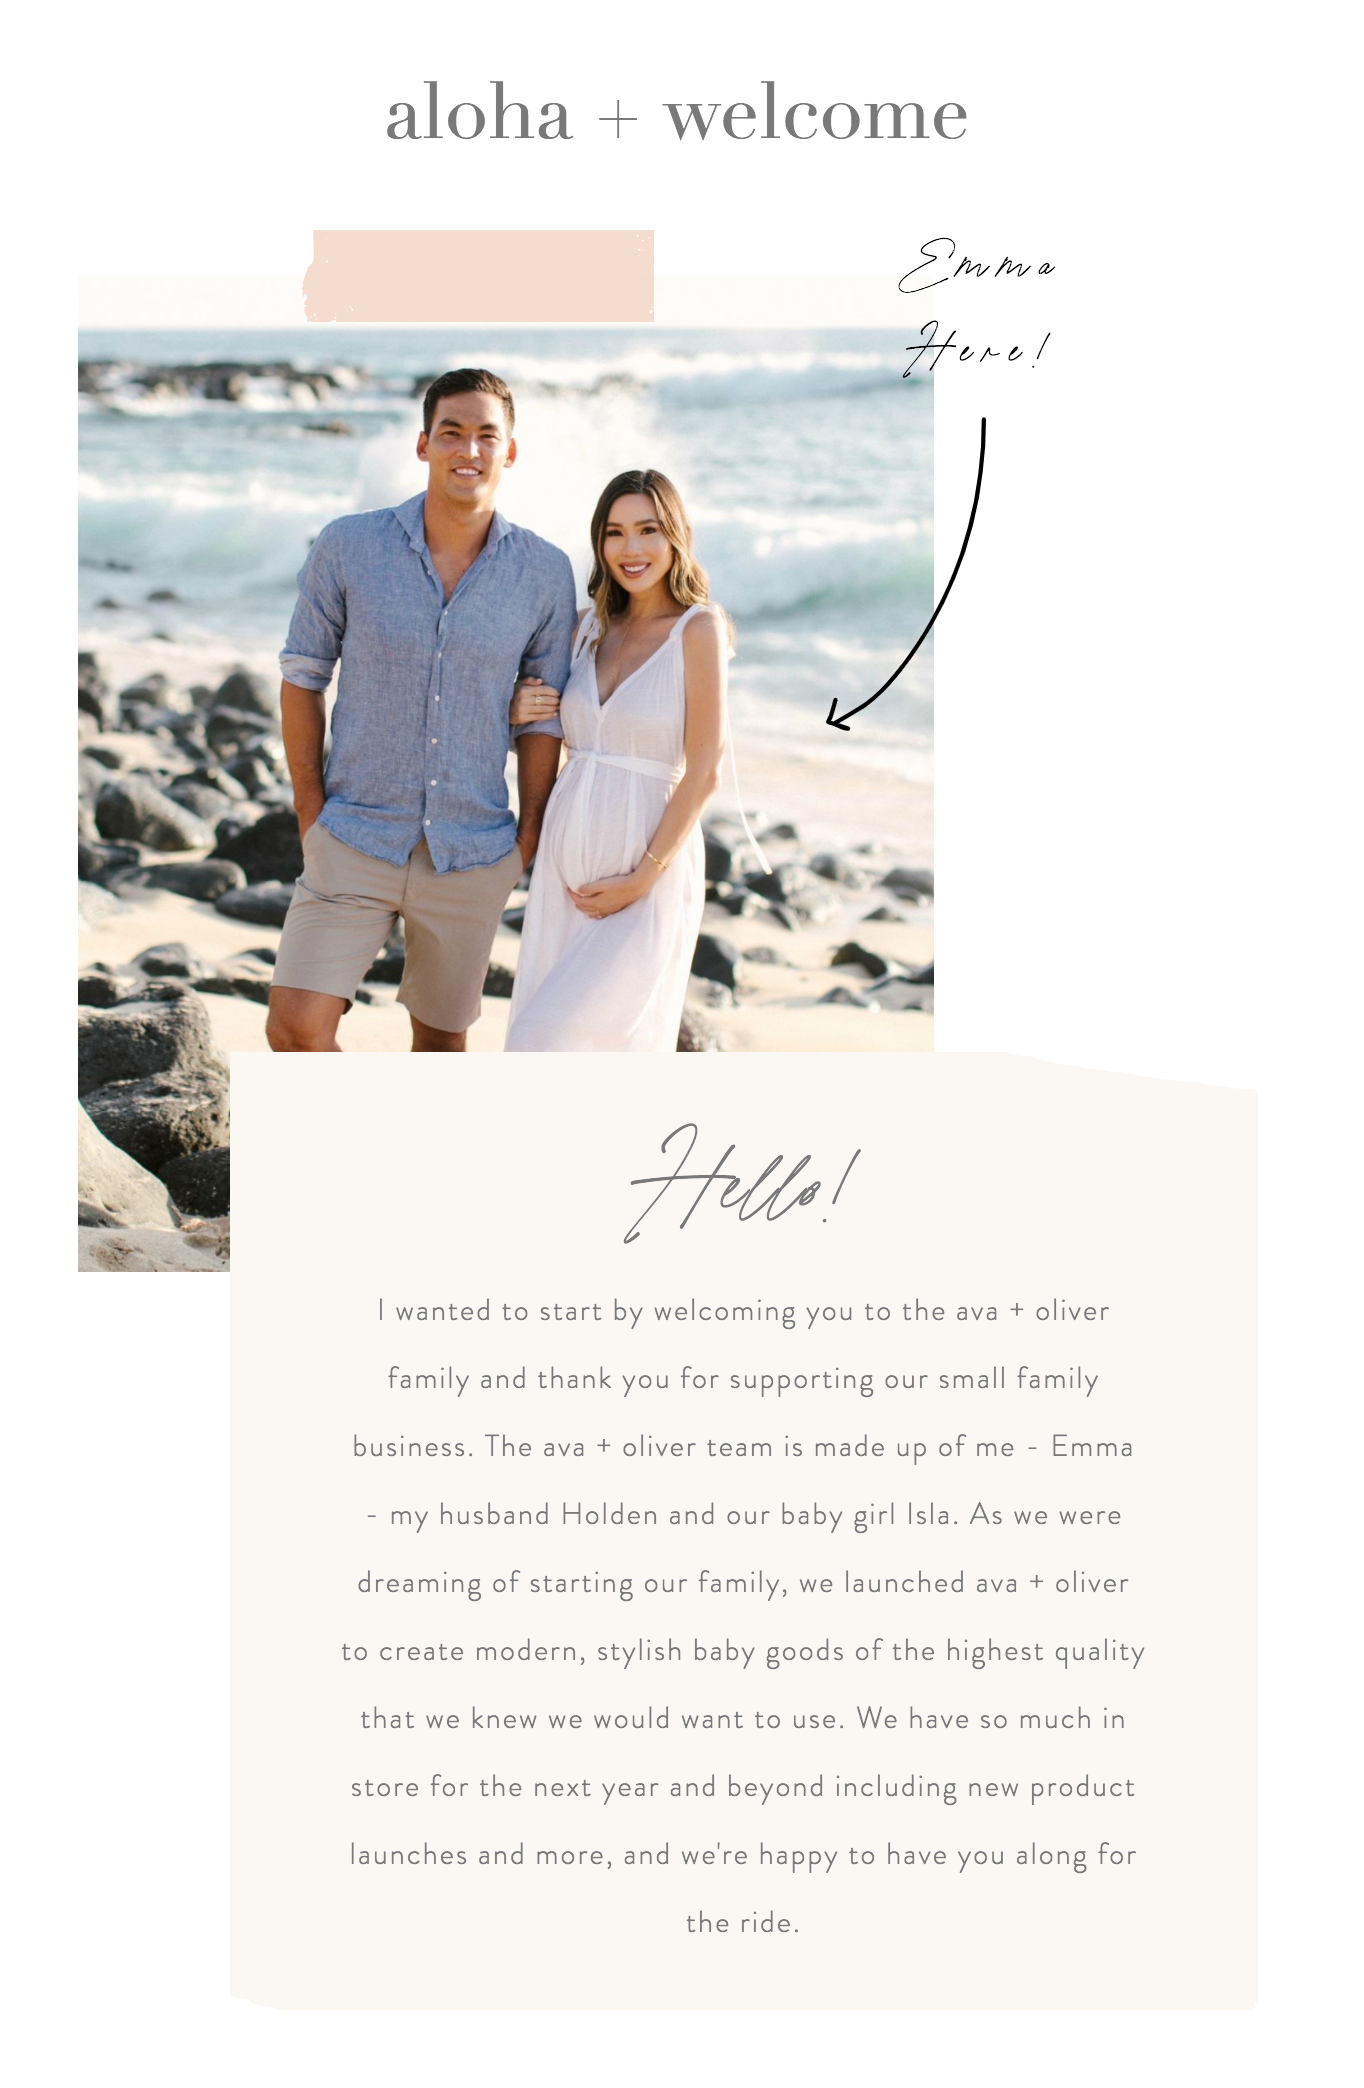 I wanted to start by welcoming you to the ava + oliver family and thank you for supporting our small family business. The ava + oliver team is made up of me - Emma - my husband Holden and our baby girl Isla. As we were dreaming of starting our family, we launched ava + oliver to create modern, stylish baby goods of the highest quality that we knew we would want to use. We have so much in store for the next year and beyond including new product launches and more, and we're happy to have you along for the ride.